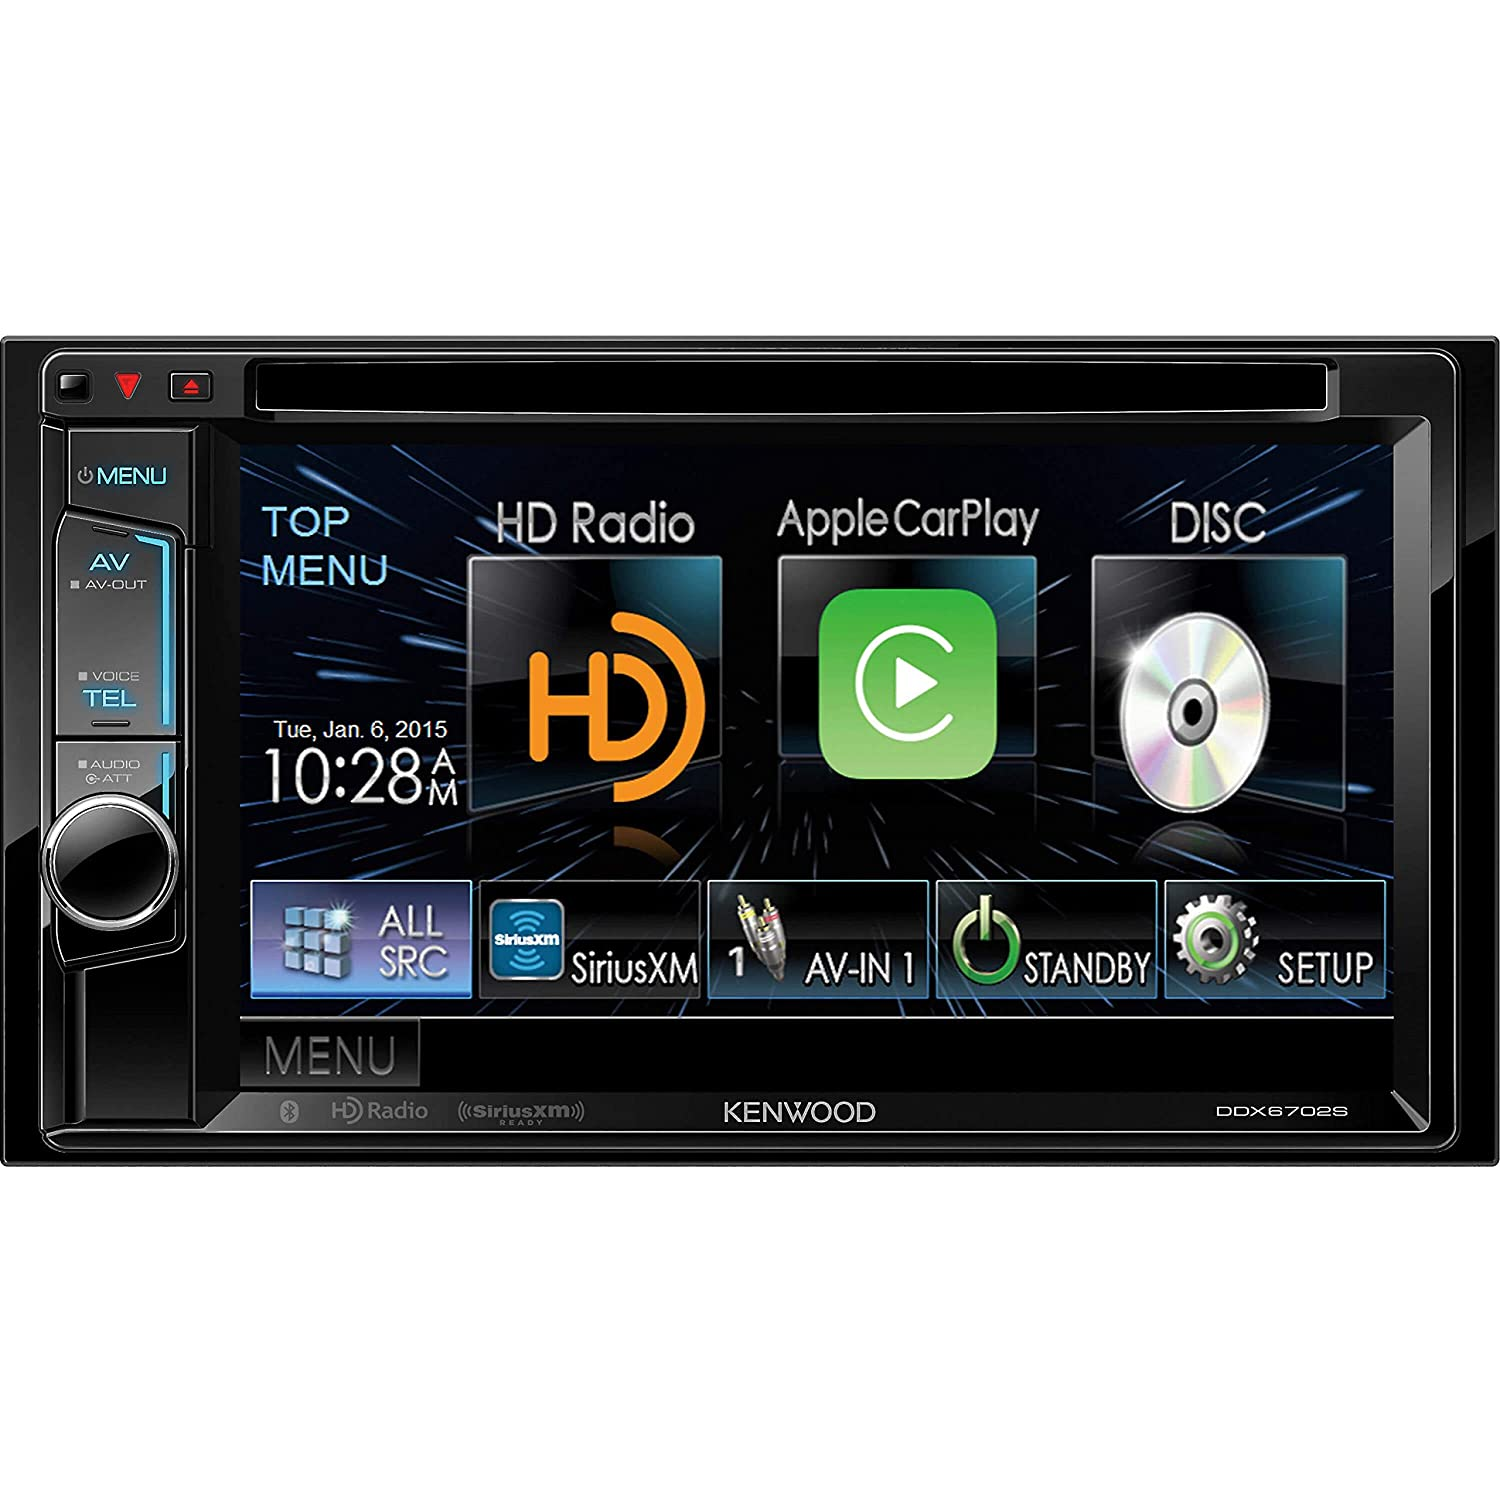 Kenwood Ddx6702s 62 Dvd Receiver With Apple Carplay Car Stereo Audio Bluetooth And Hd Radio Electronics